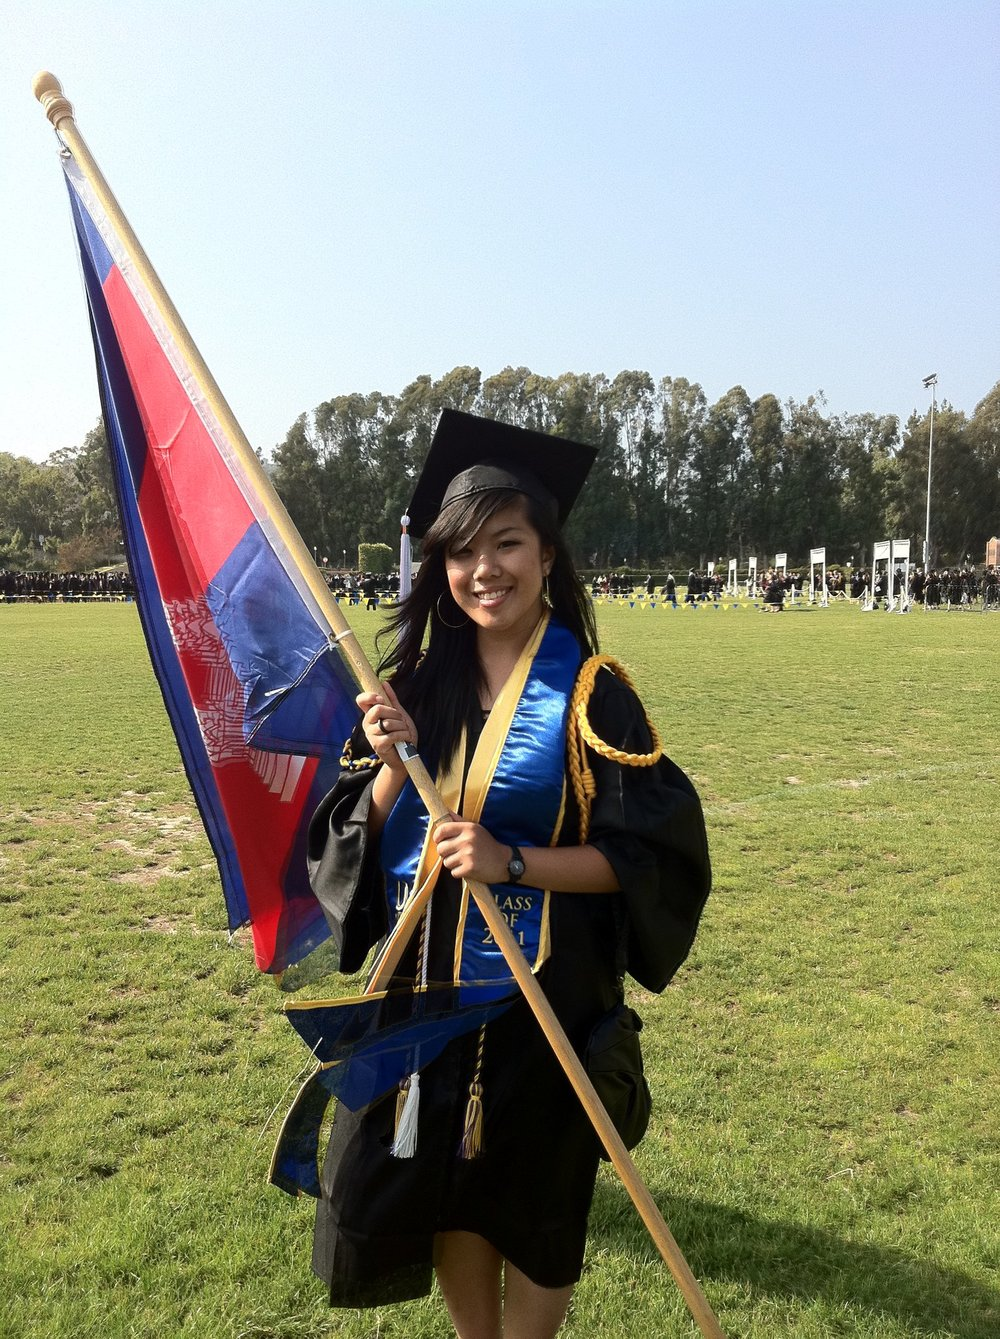 Being the Cambodian flag-bearer at the UCLA graduation.